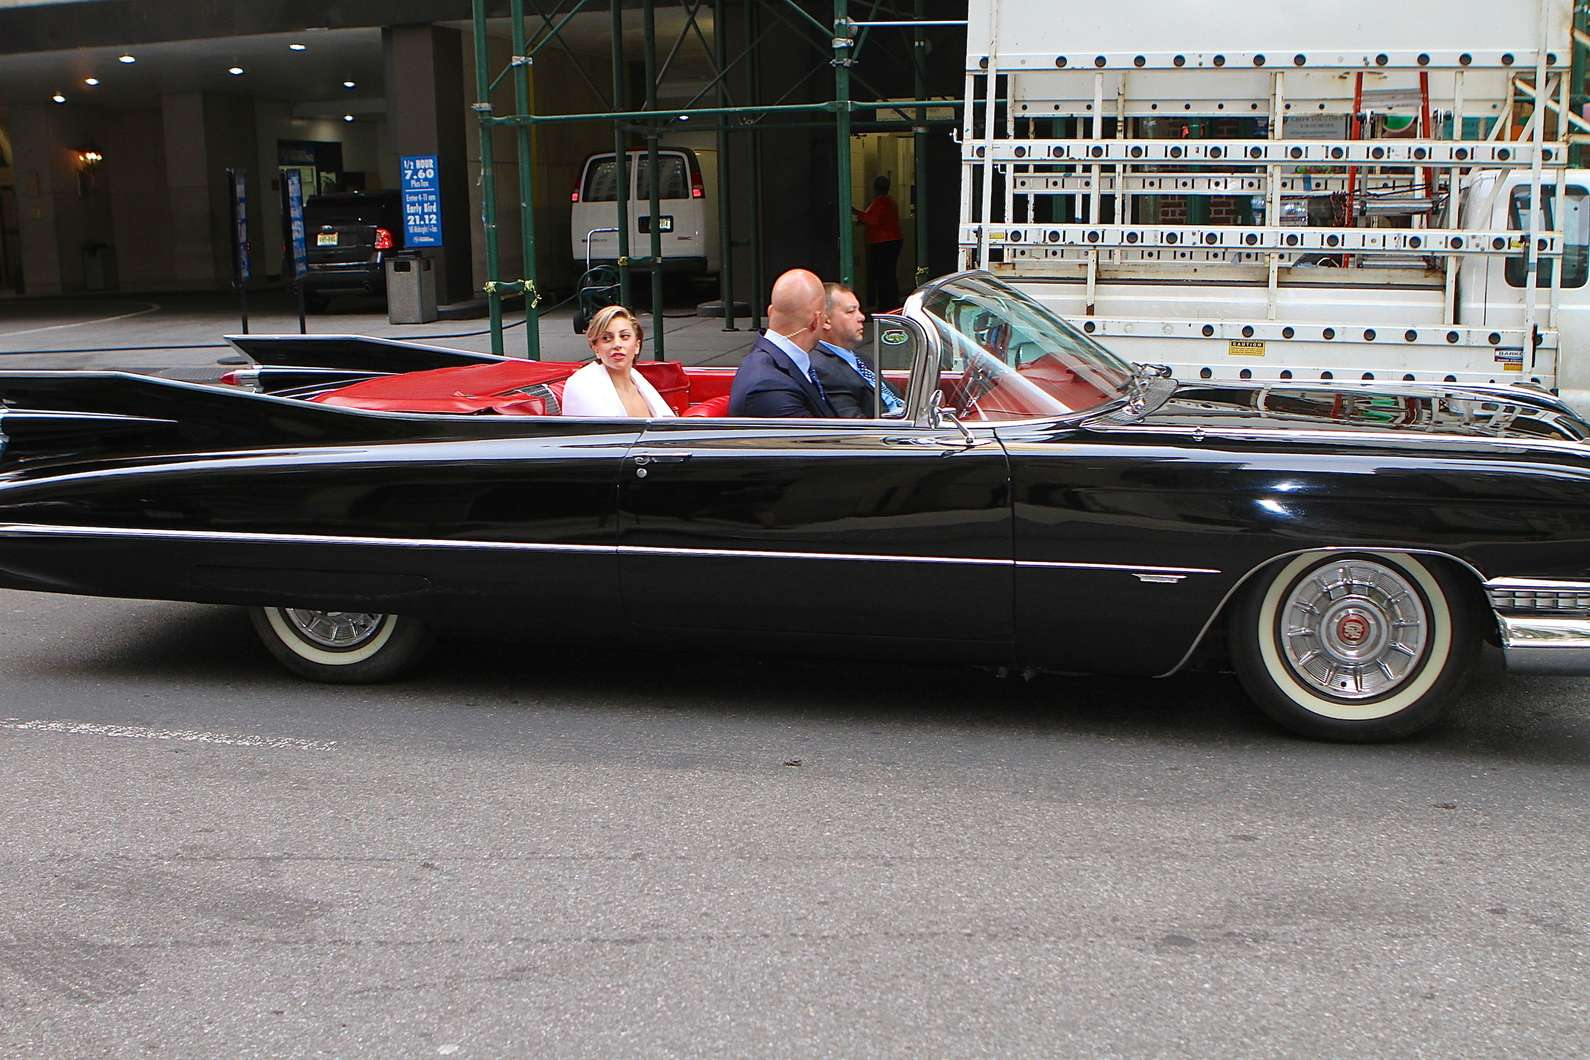 1959 cadillac lady back to full gallery lady gaga in an old school. Cars Review. Best American Auto & Cars Review